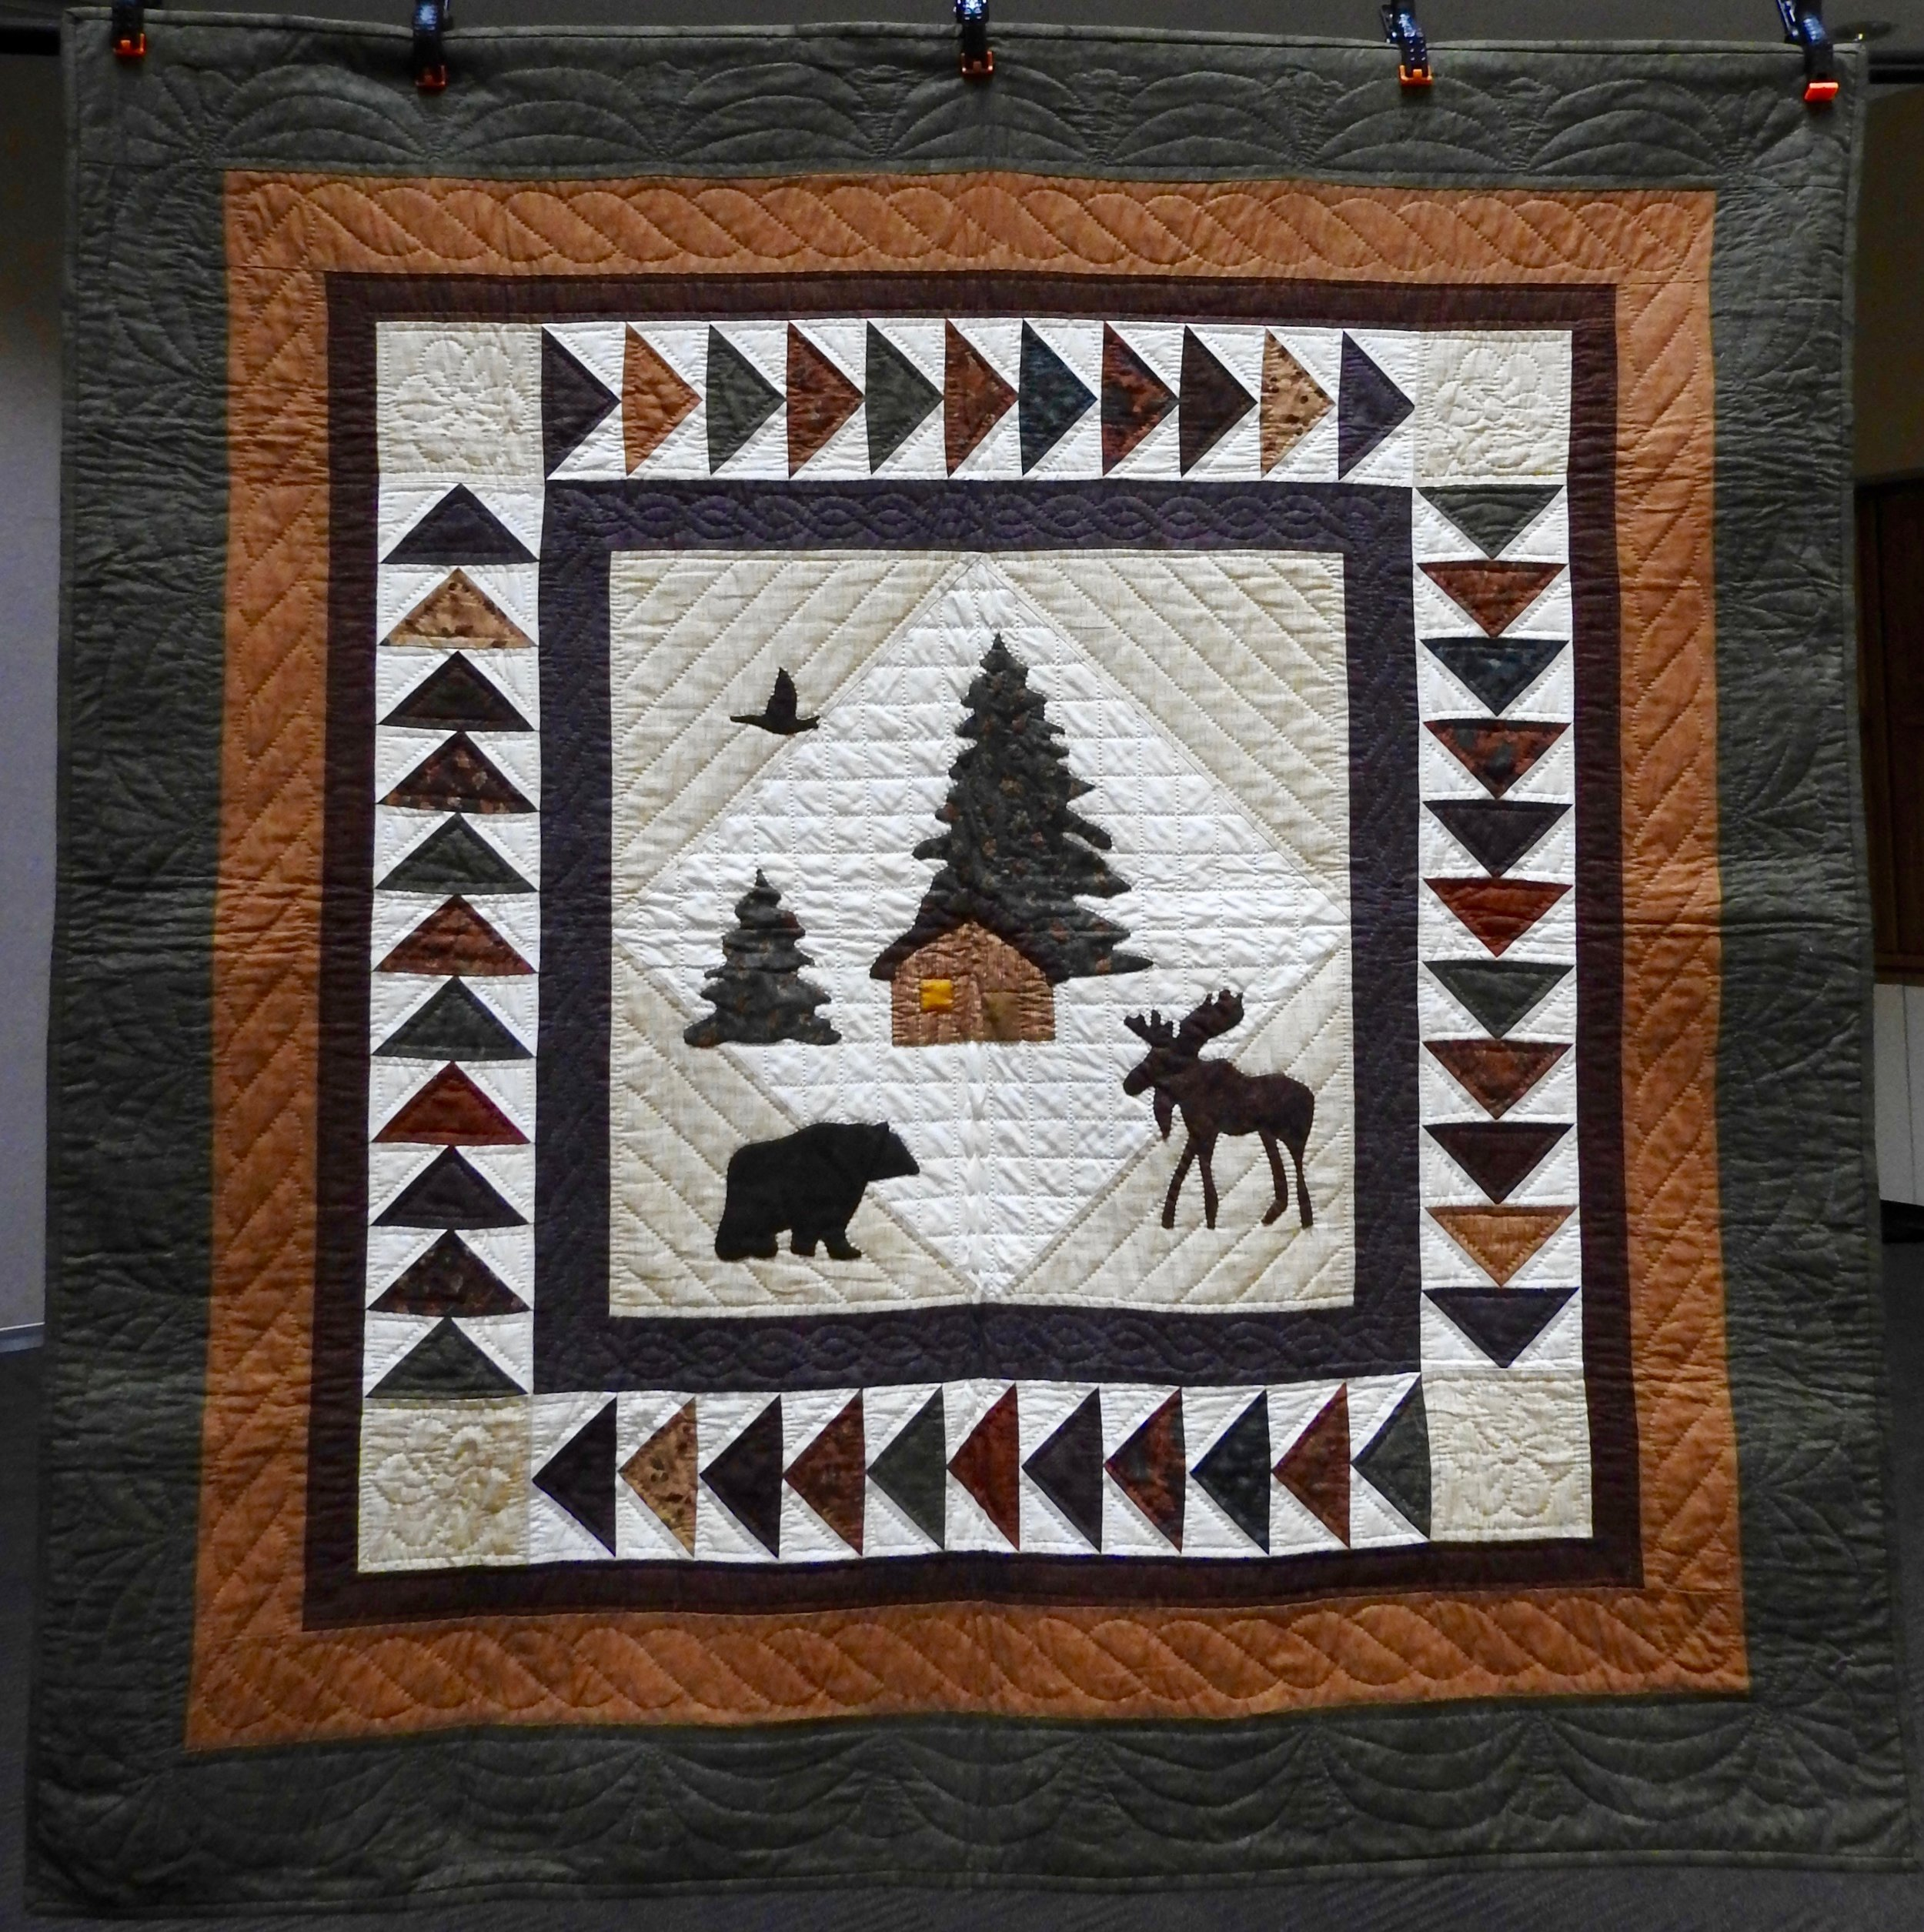 Rustic Cabin, Pieced, Appliquéd, Hand Quilted, donated by Ann Marie Gebbart, 54 x 54""